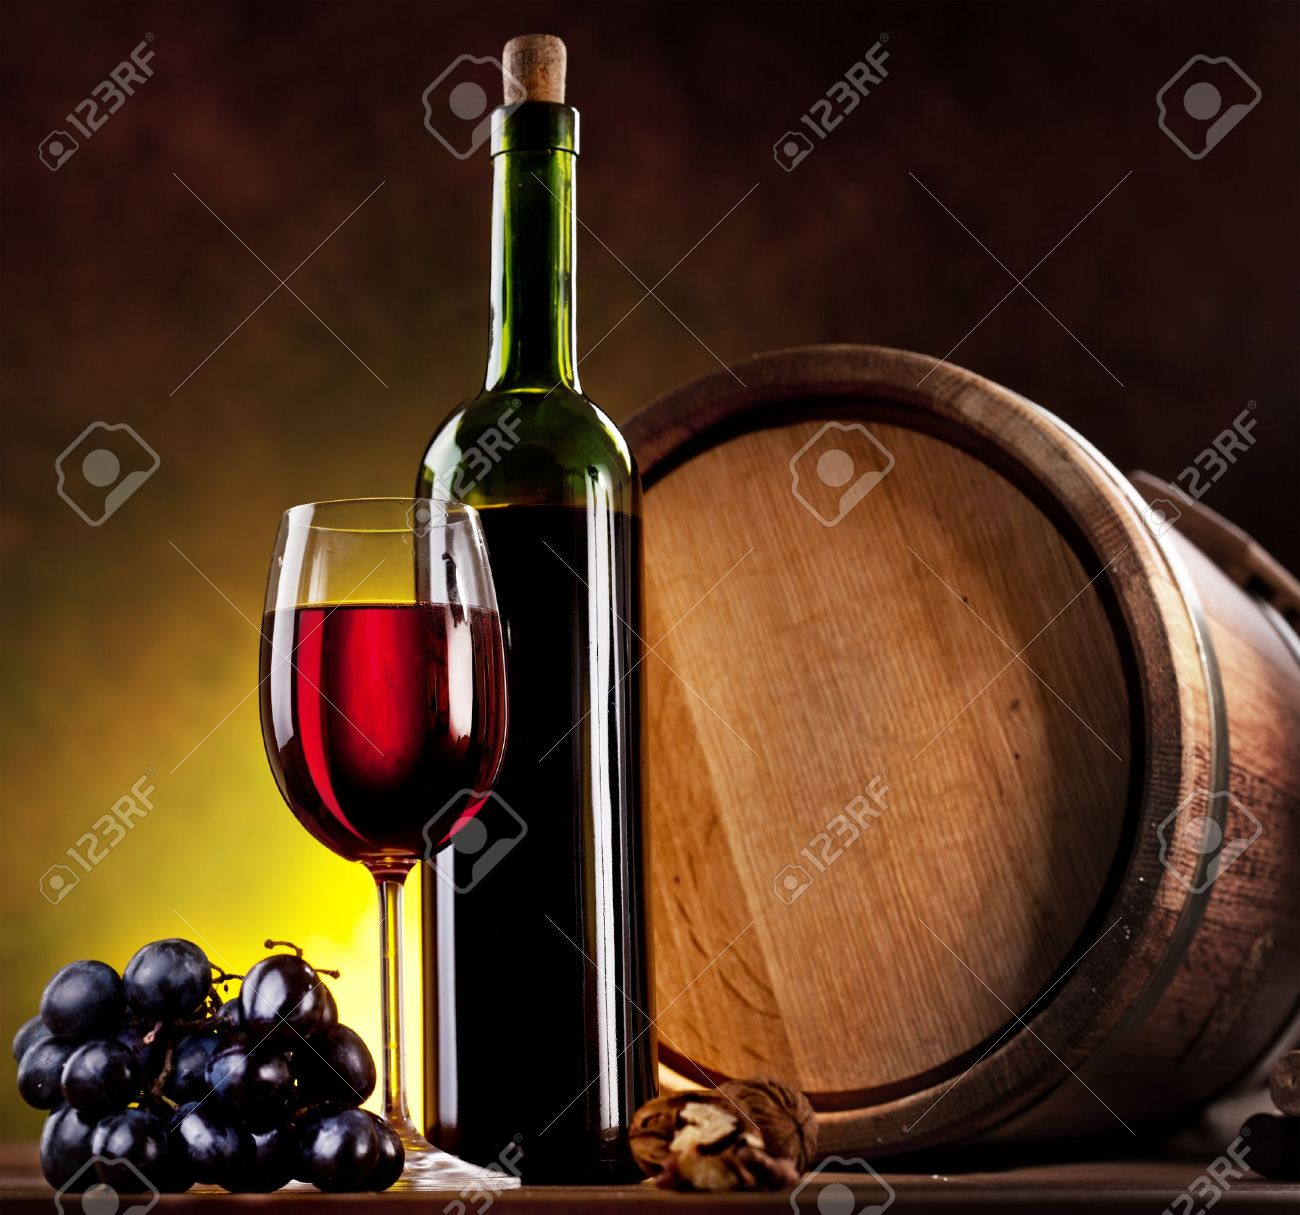 Still life with wine bottle, glass and oak barrels. Stock Photo - 9074392